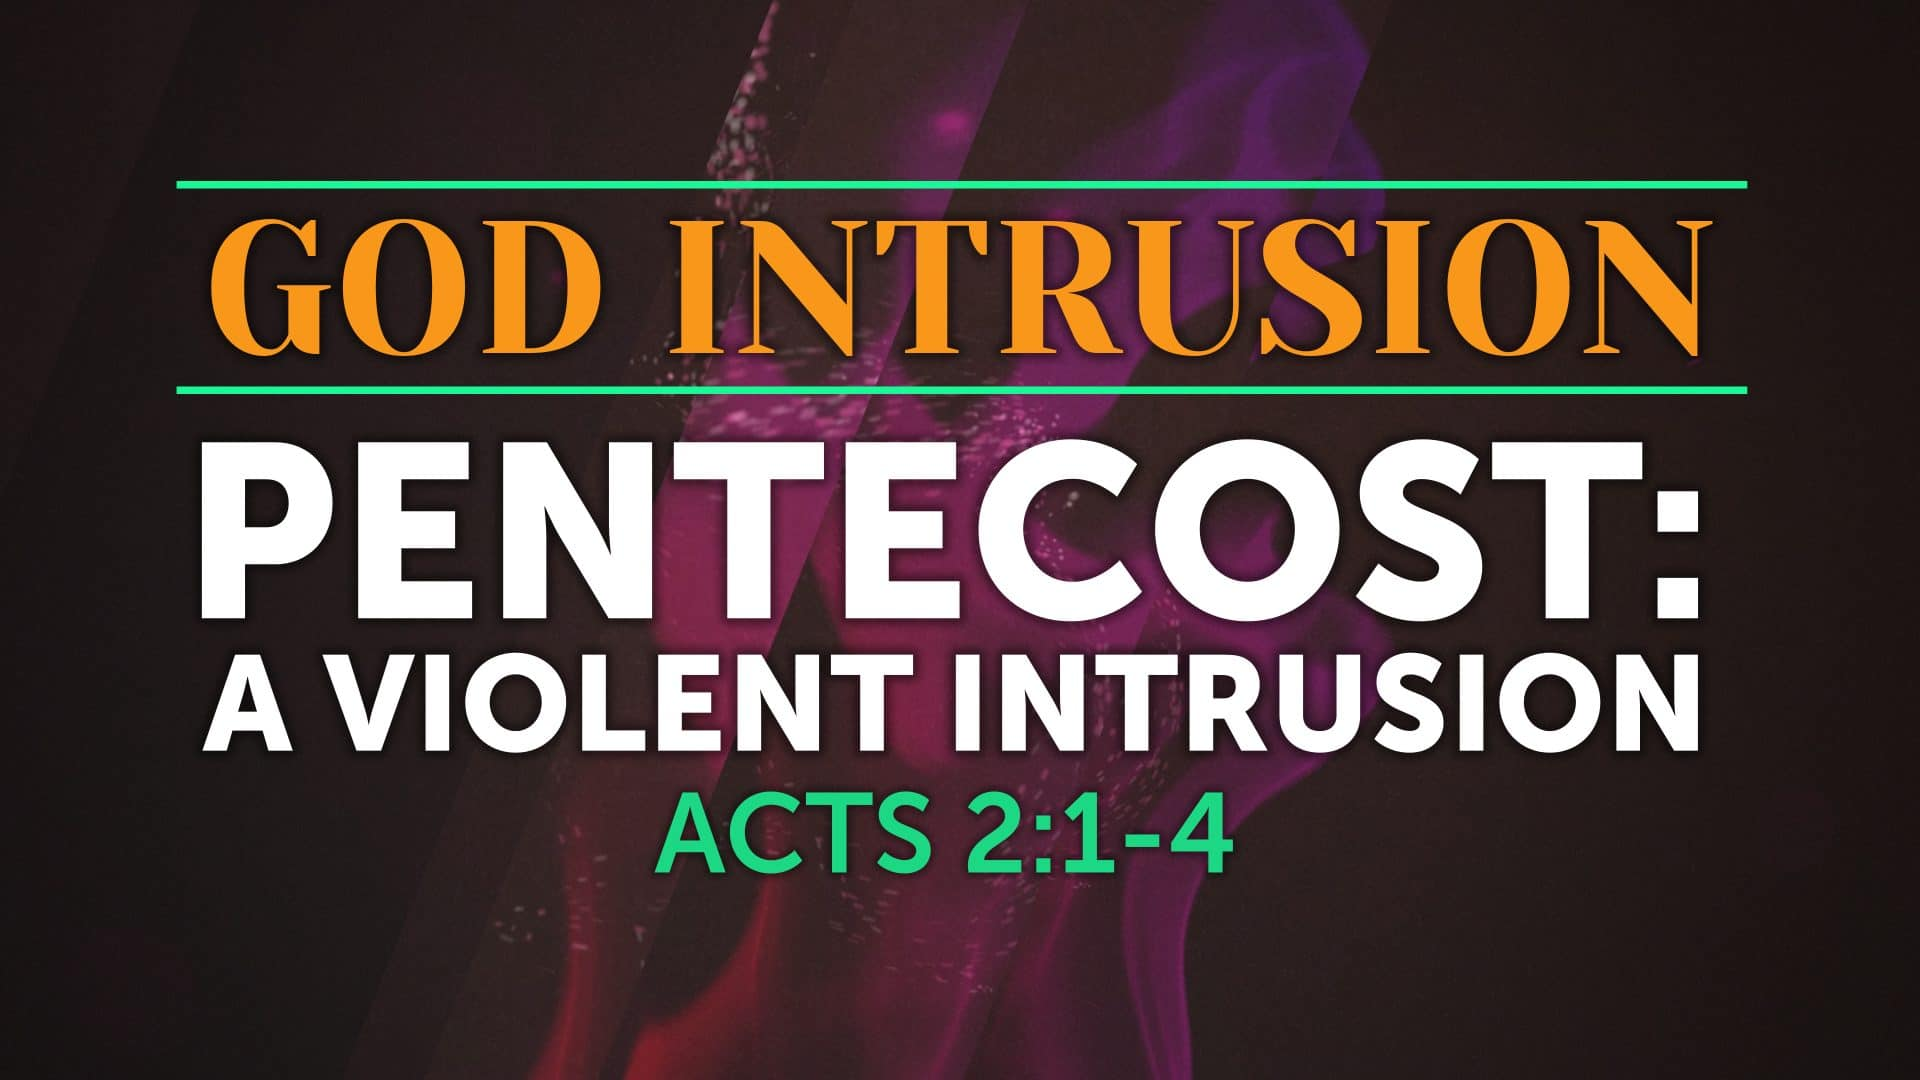 The God Intrusion - Pentecost